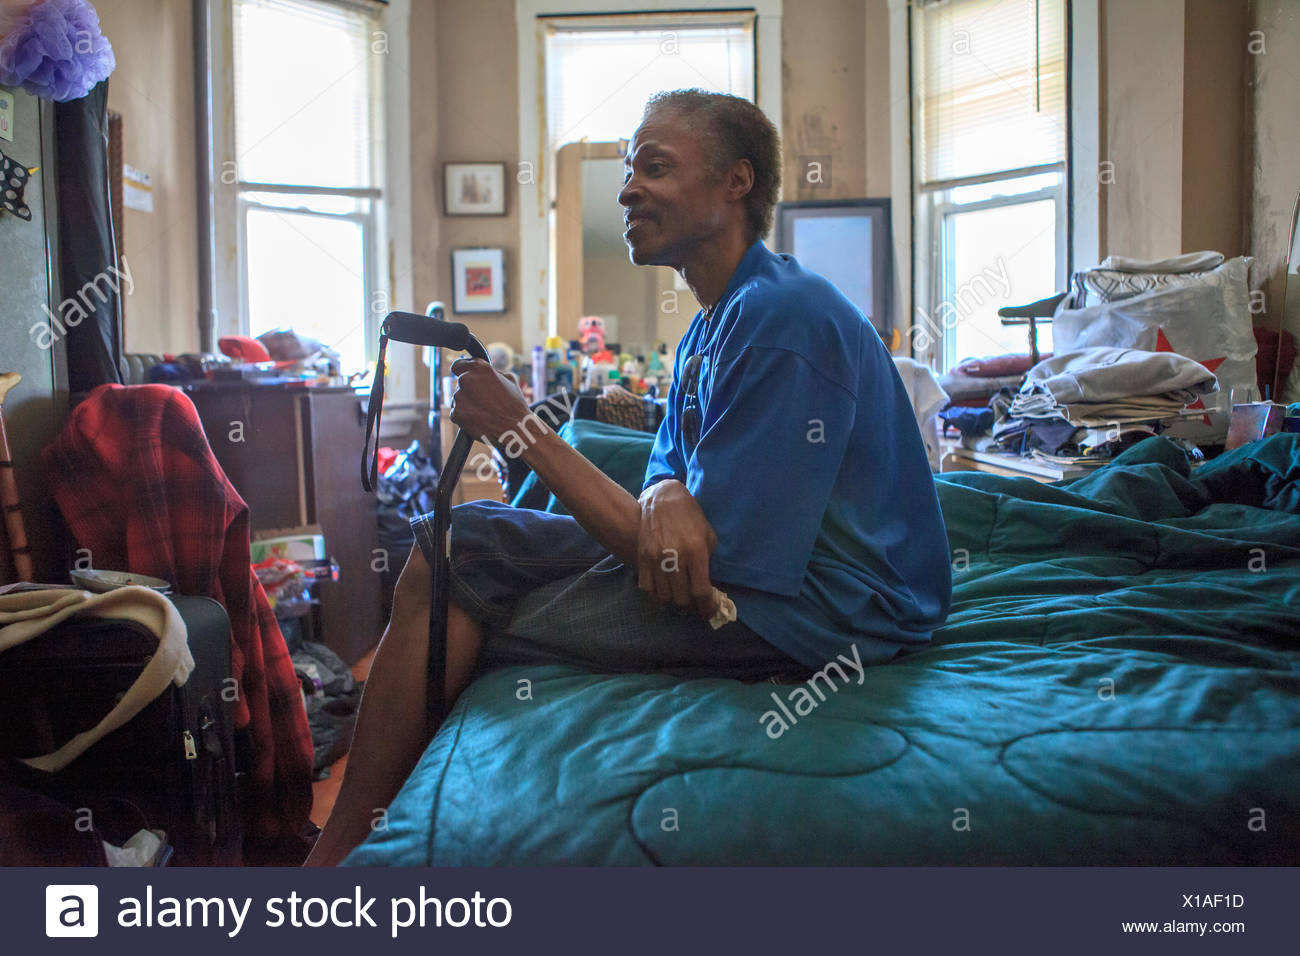 Man with Traumatic Brain Injury in his home - Stock Image